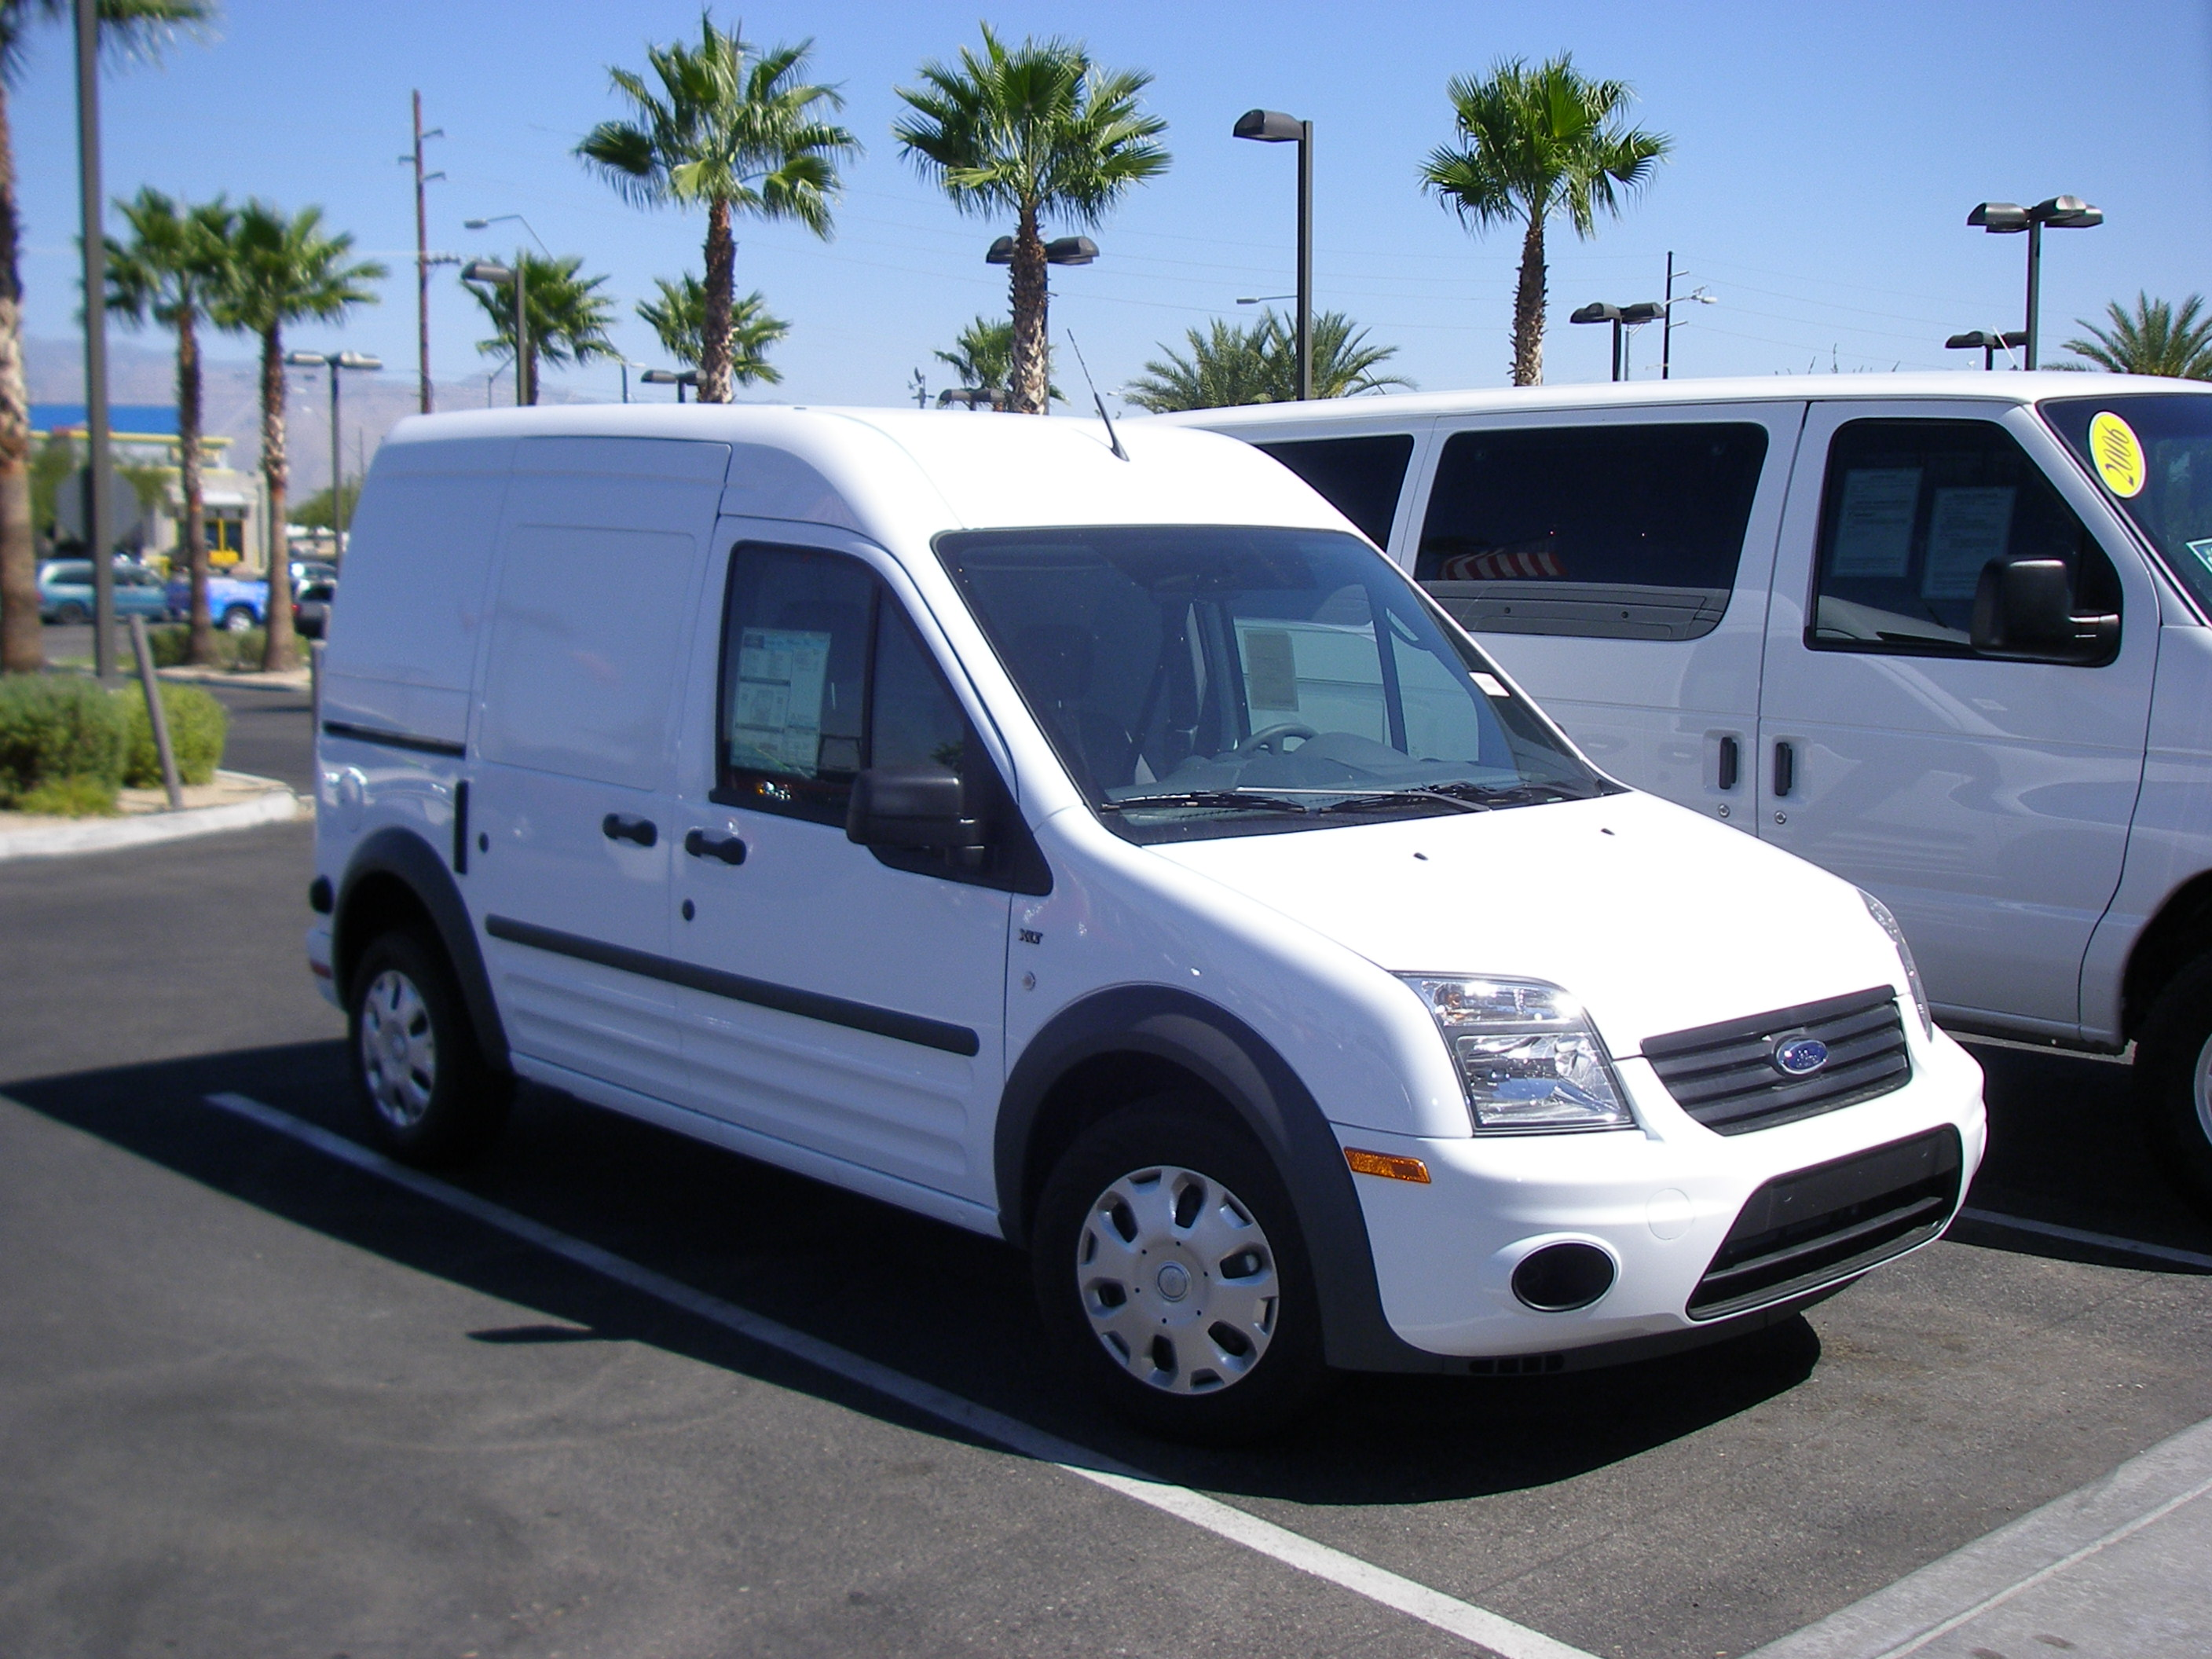 Ford Transit Connect Wikipedia >> File:Ford Transit Connect 2010.jpg - Wikimedia Commons